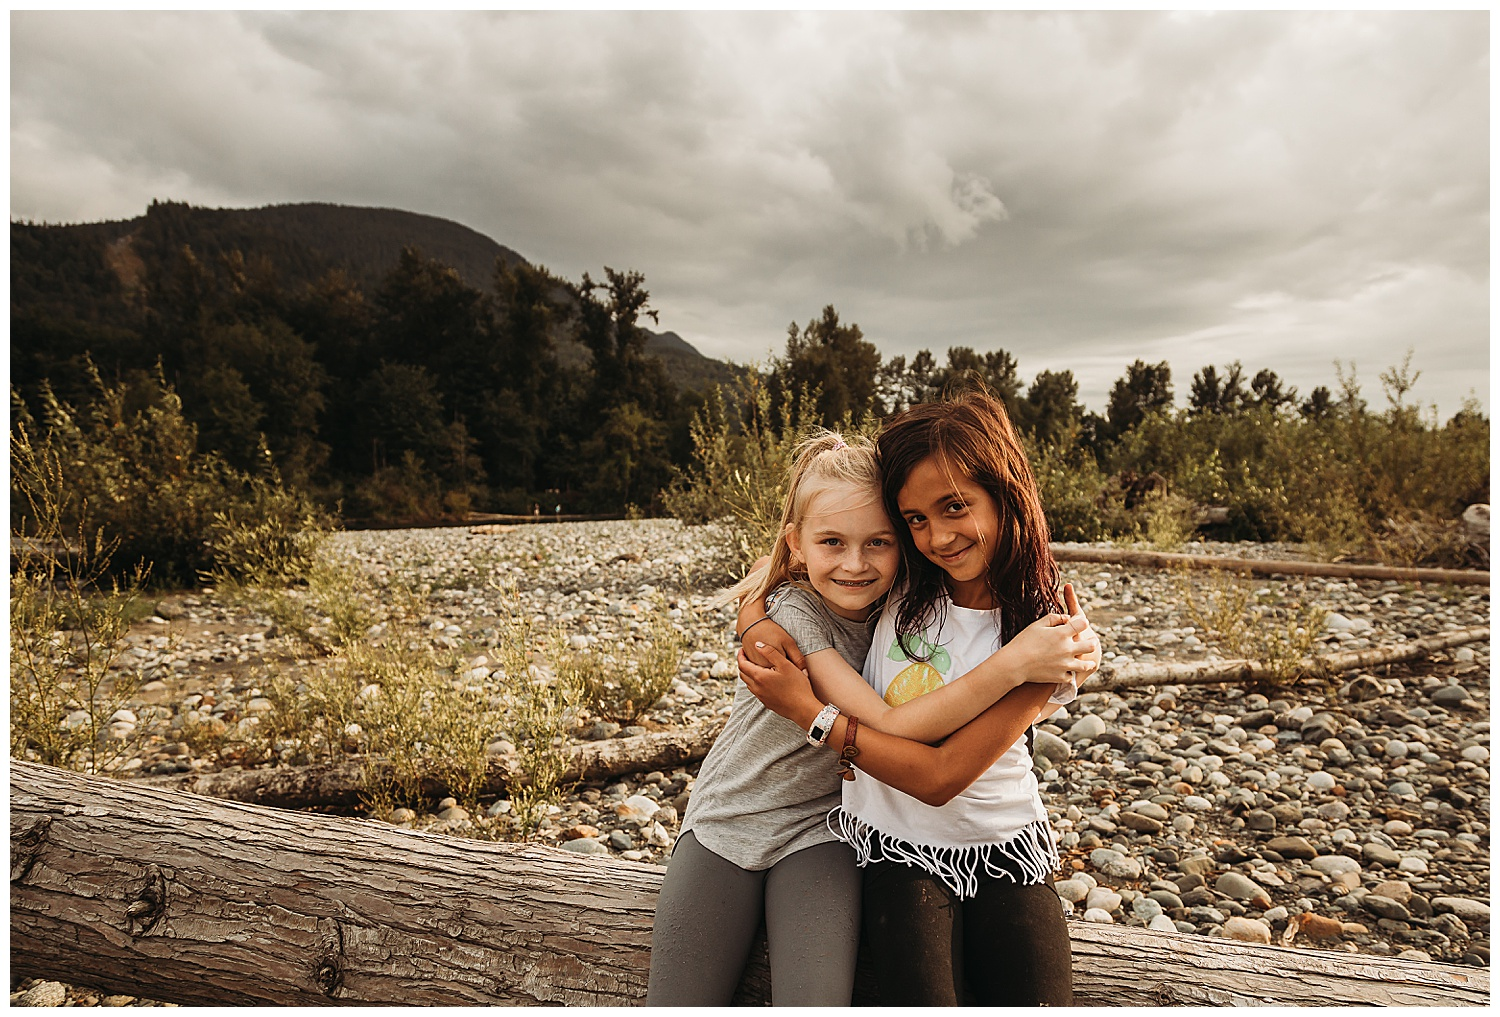 Best Friends Anna Hurley Photography Chilliwack 13.jpg